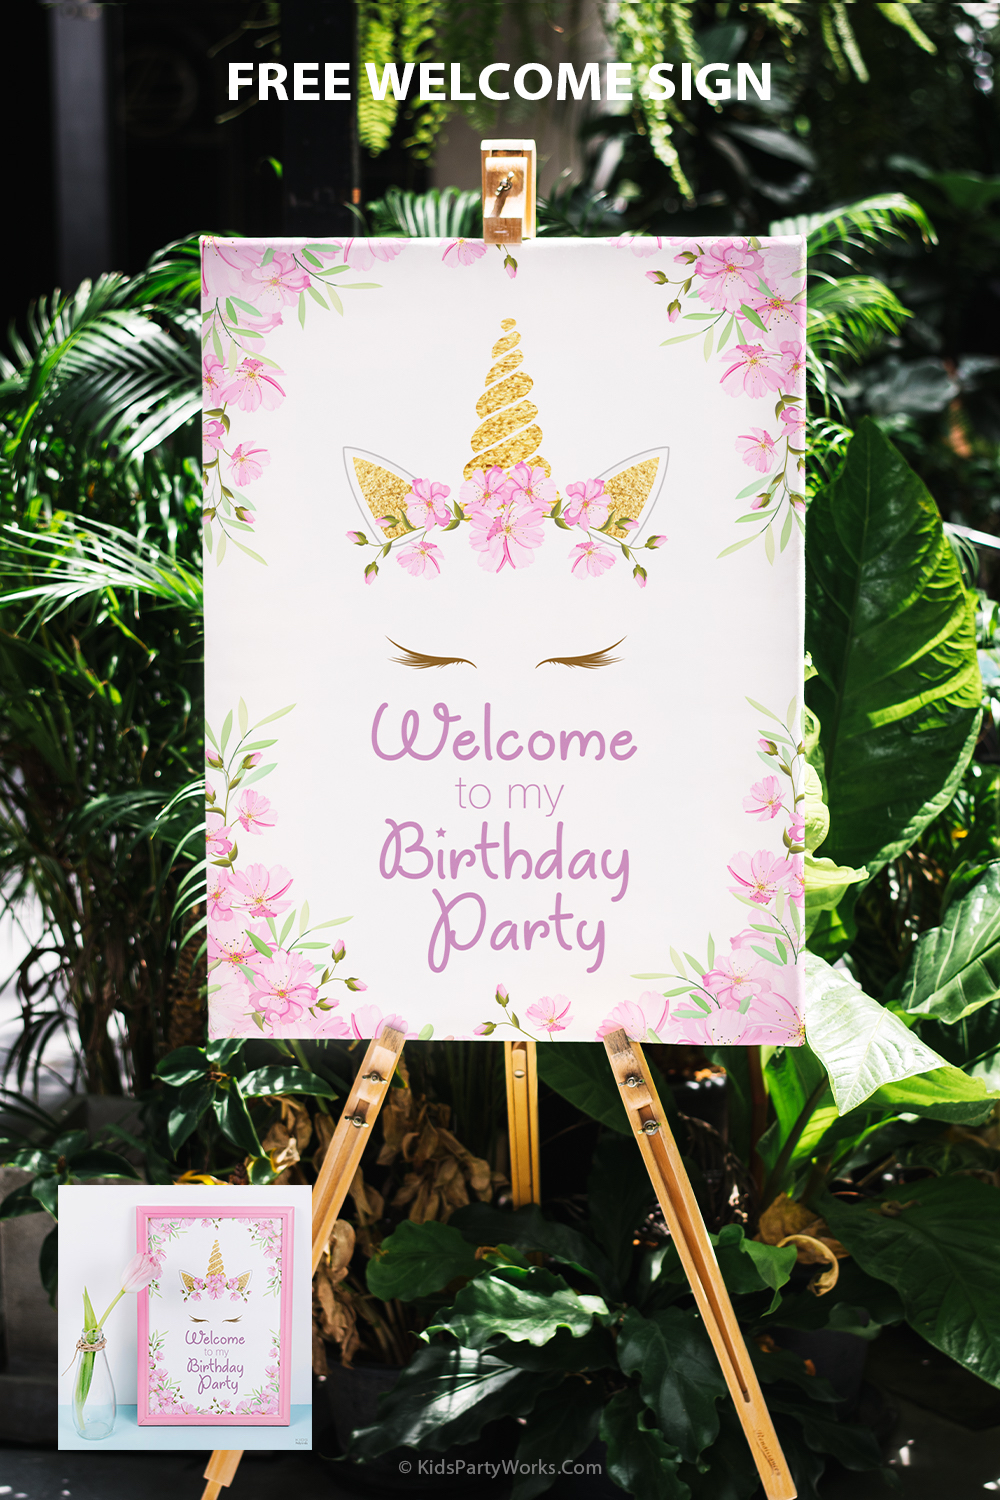 Free Unicorn Birthday Welcome Sign by KidsPartyWorks.Com